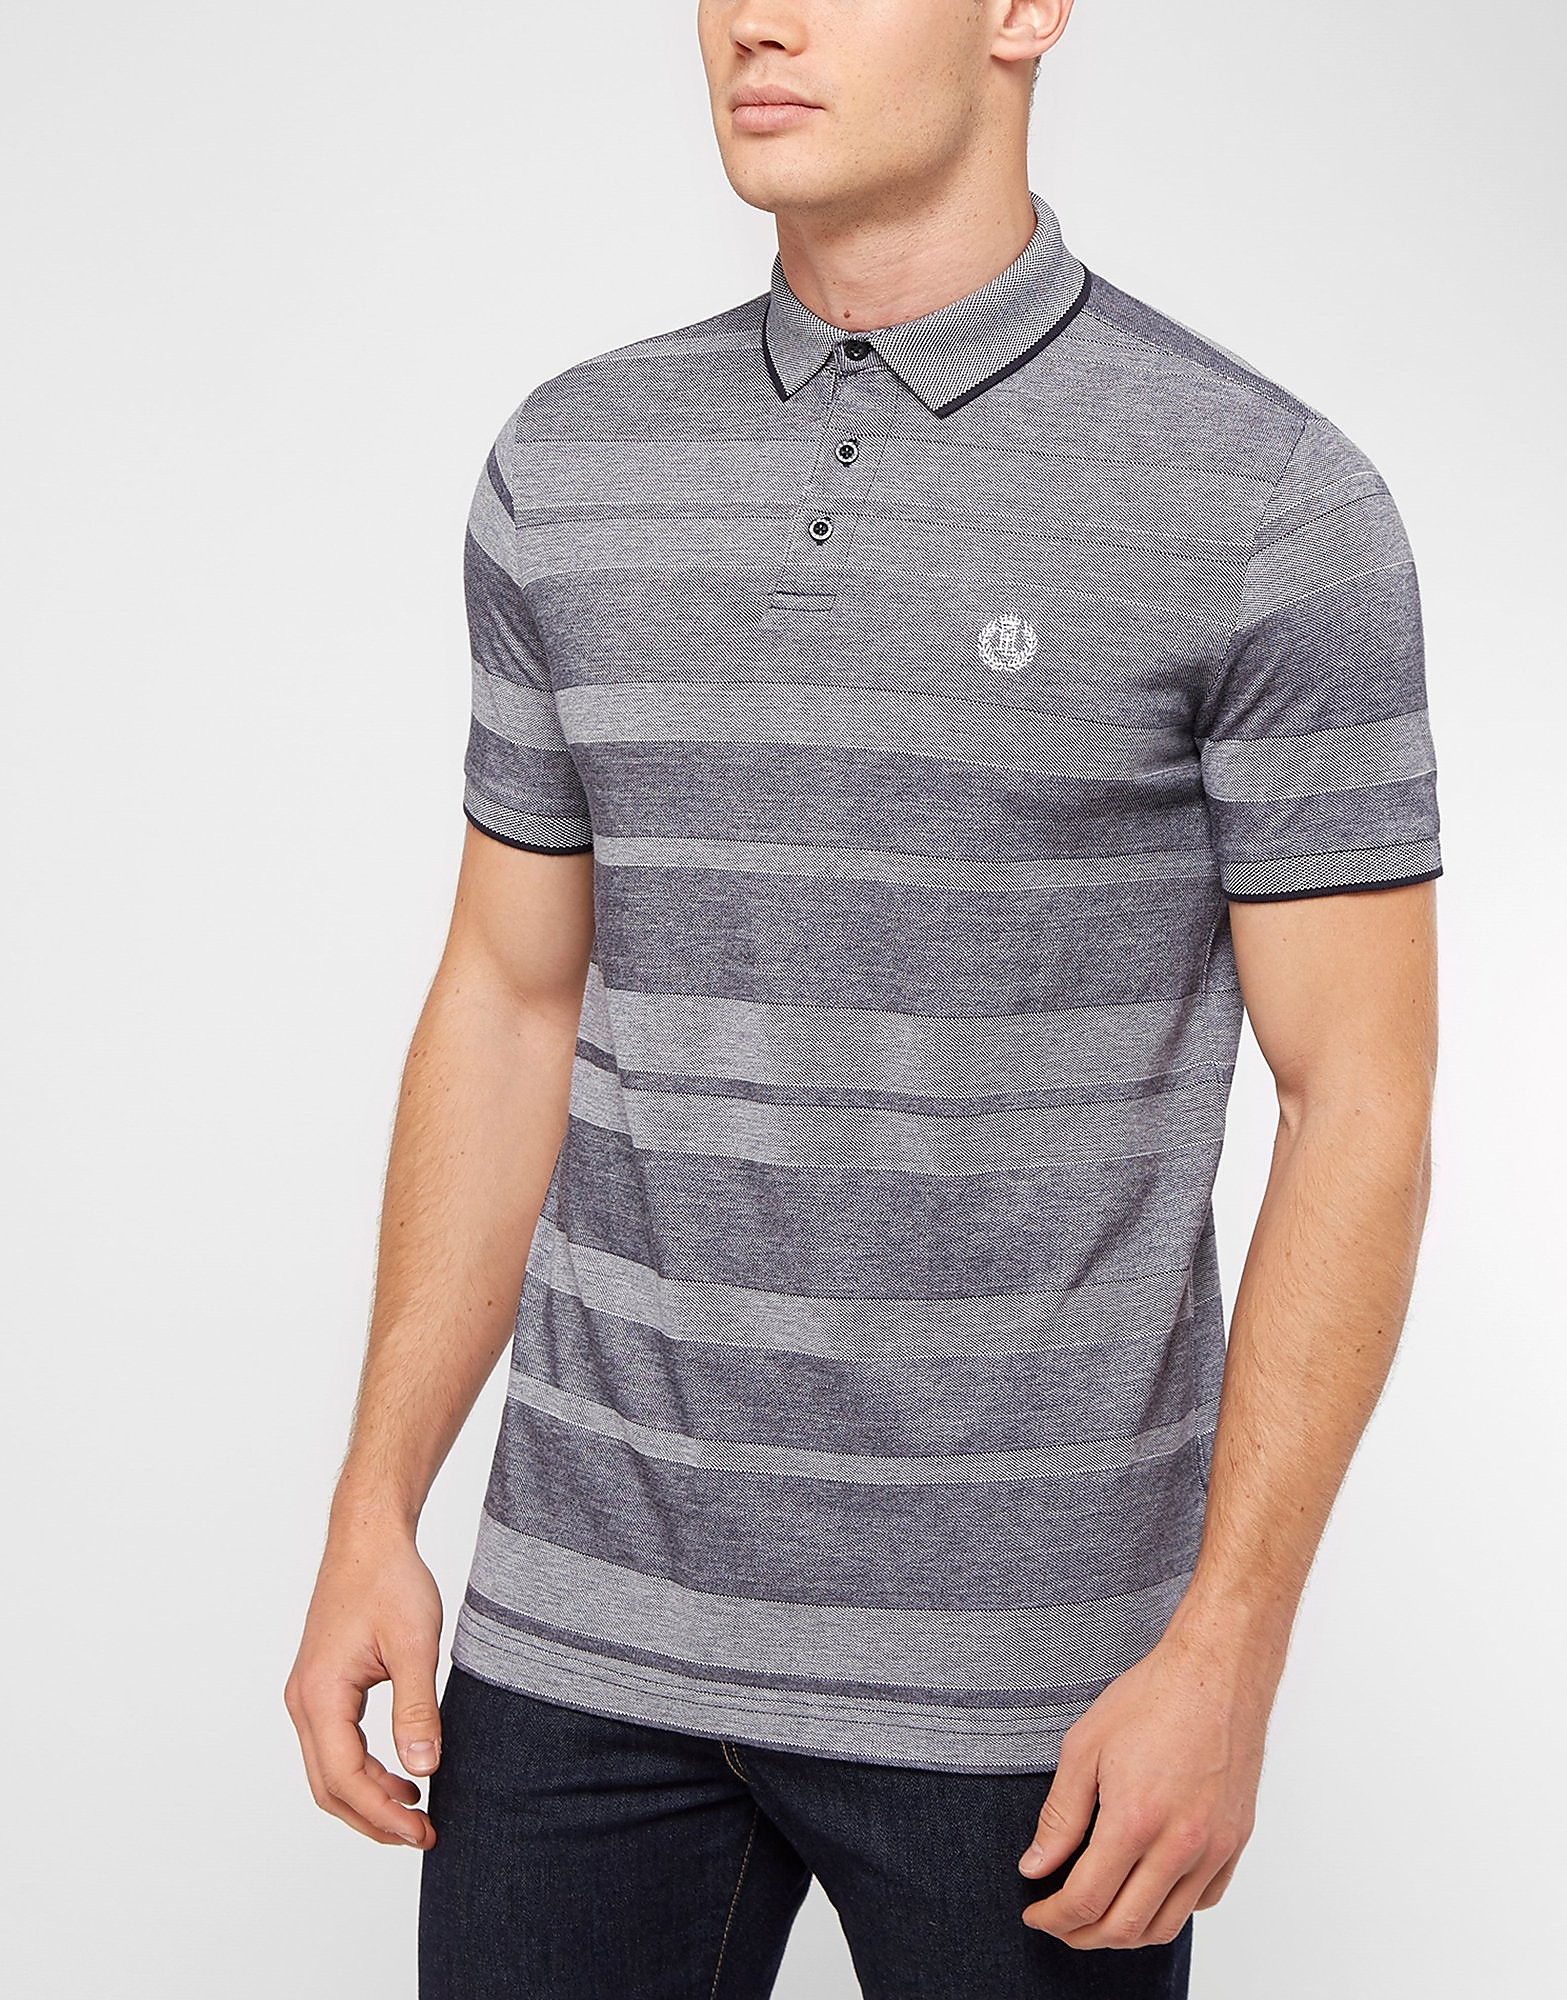 Henri Lloyd Pique Stripe Polo Shirt